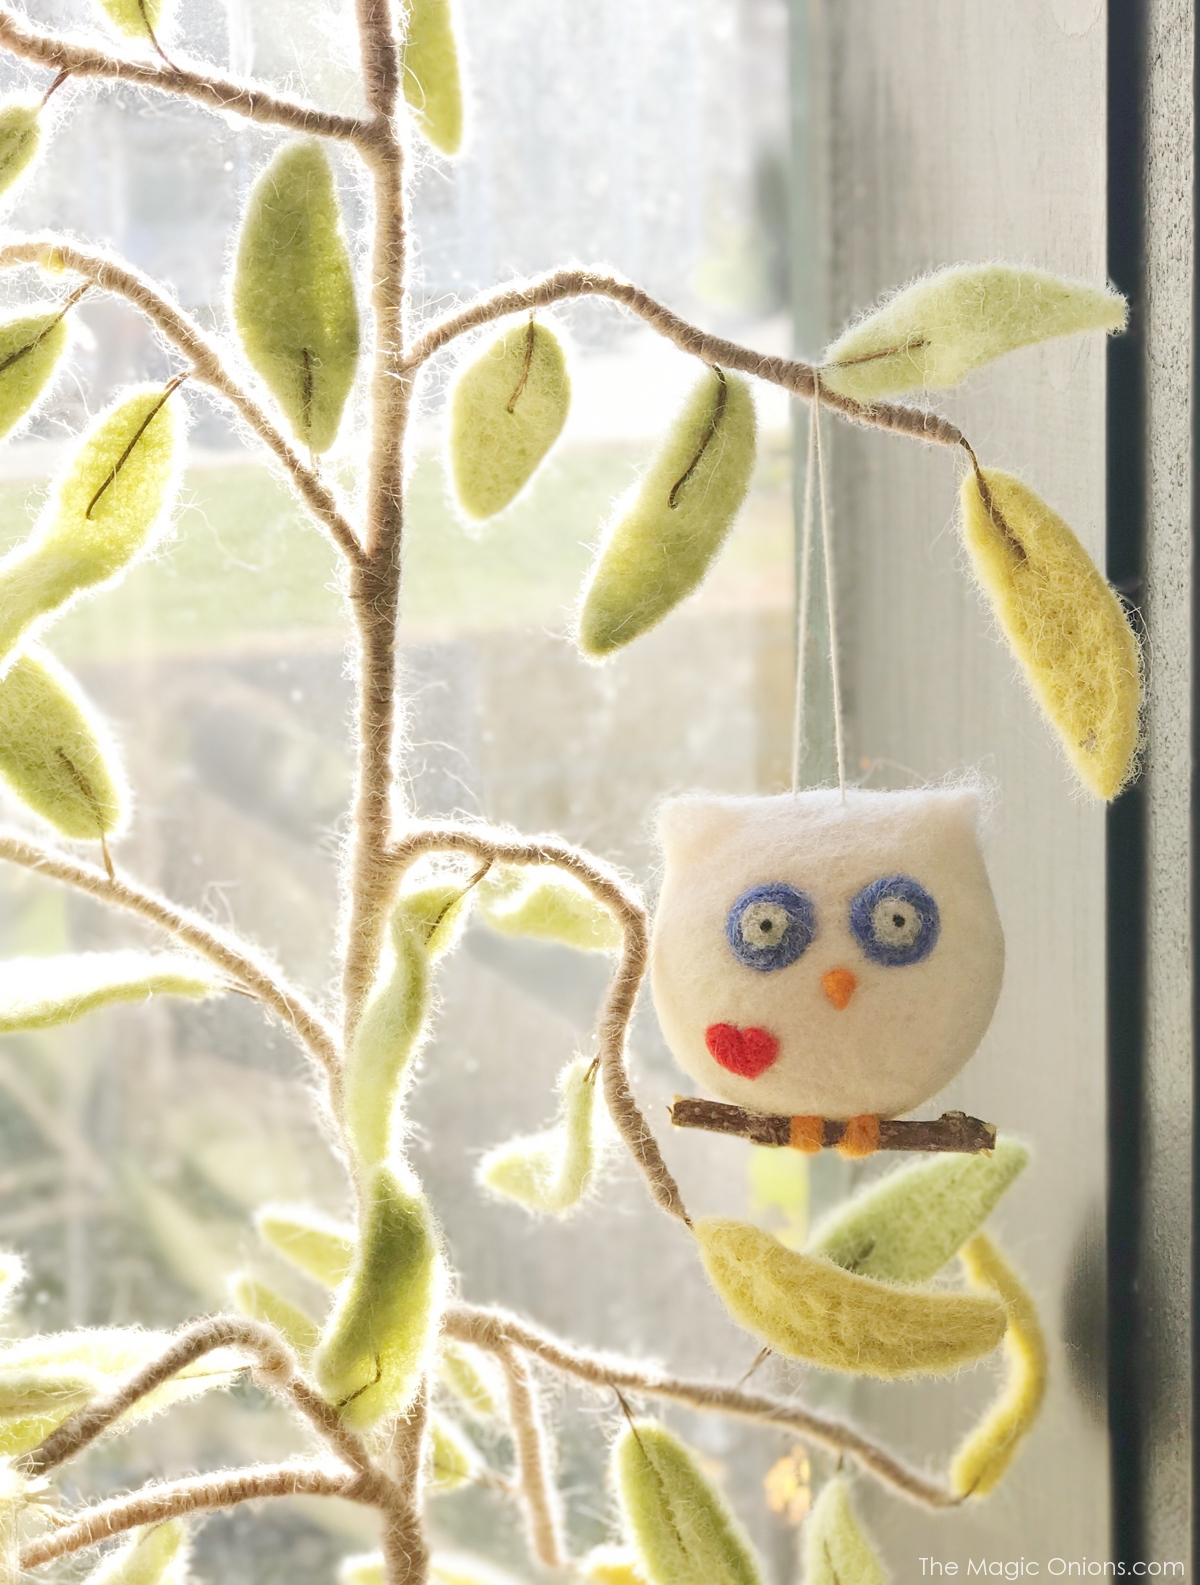 Needle felted owl from The Magic Onoins - www.theMagicOnions.com